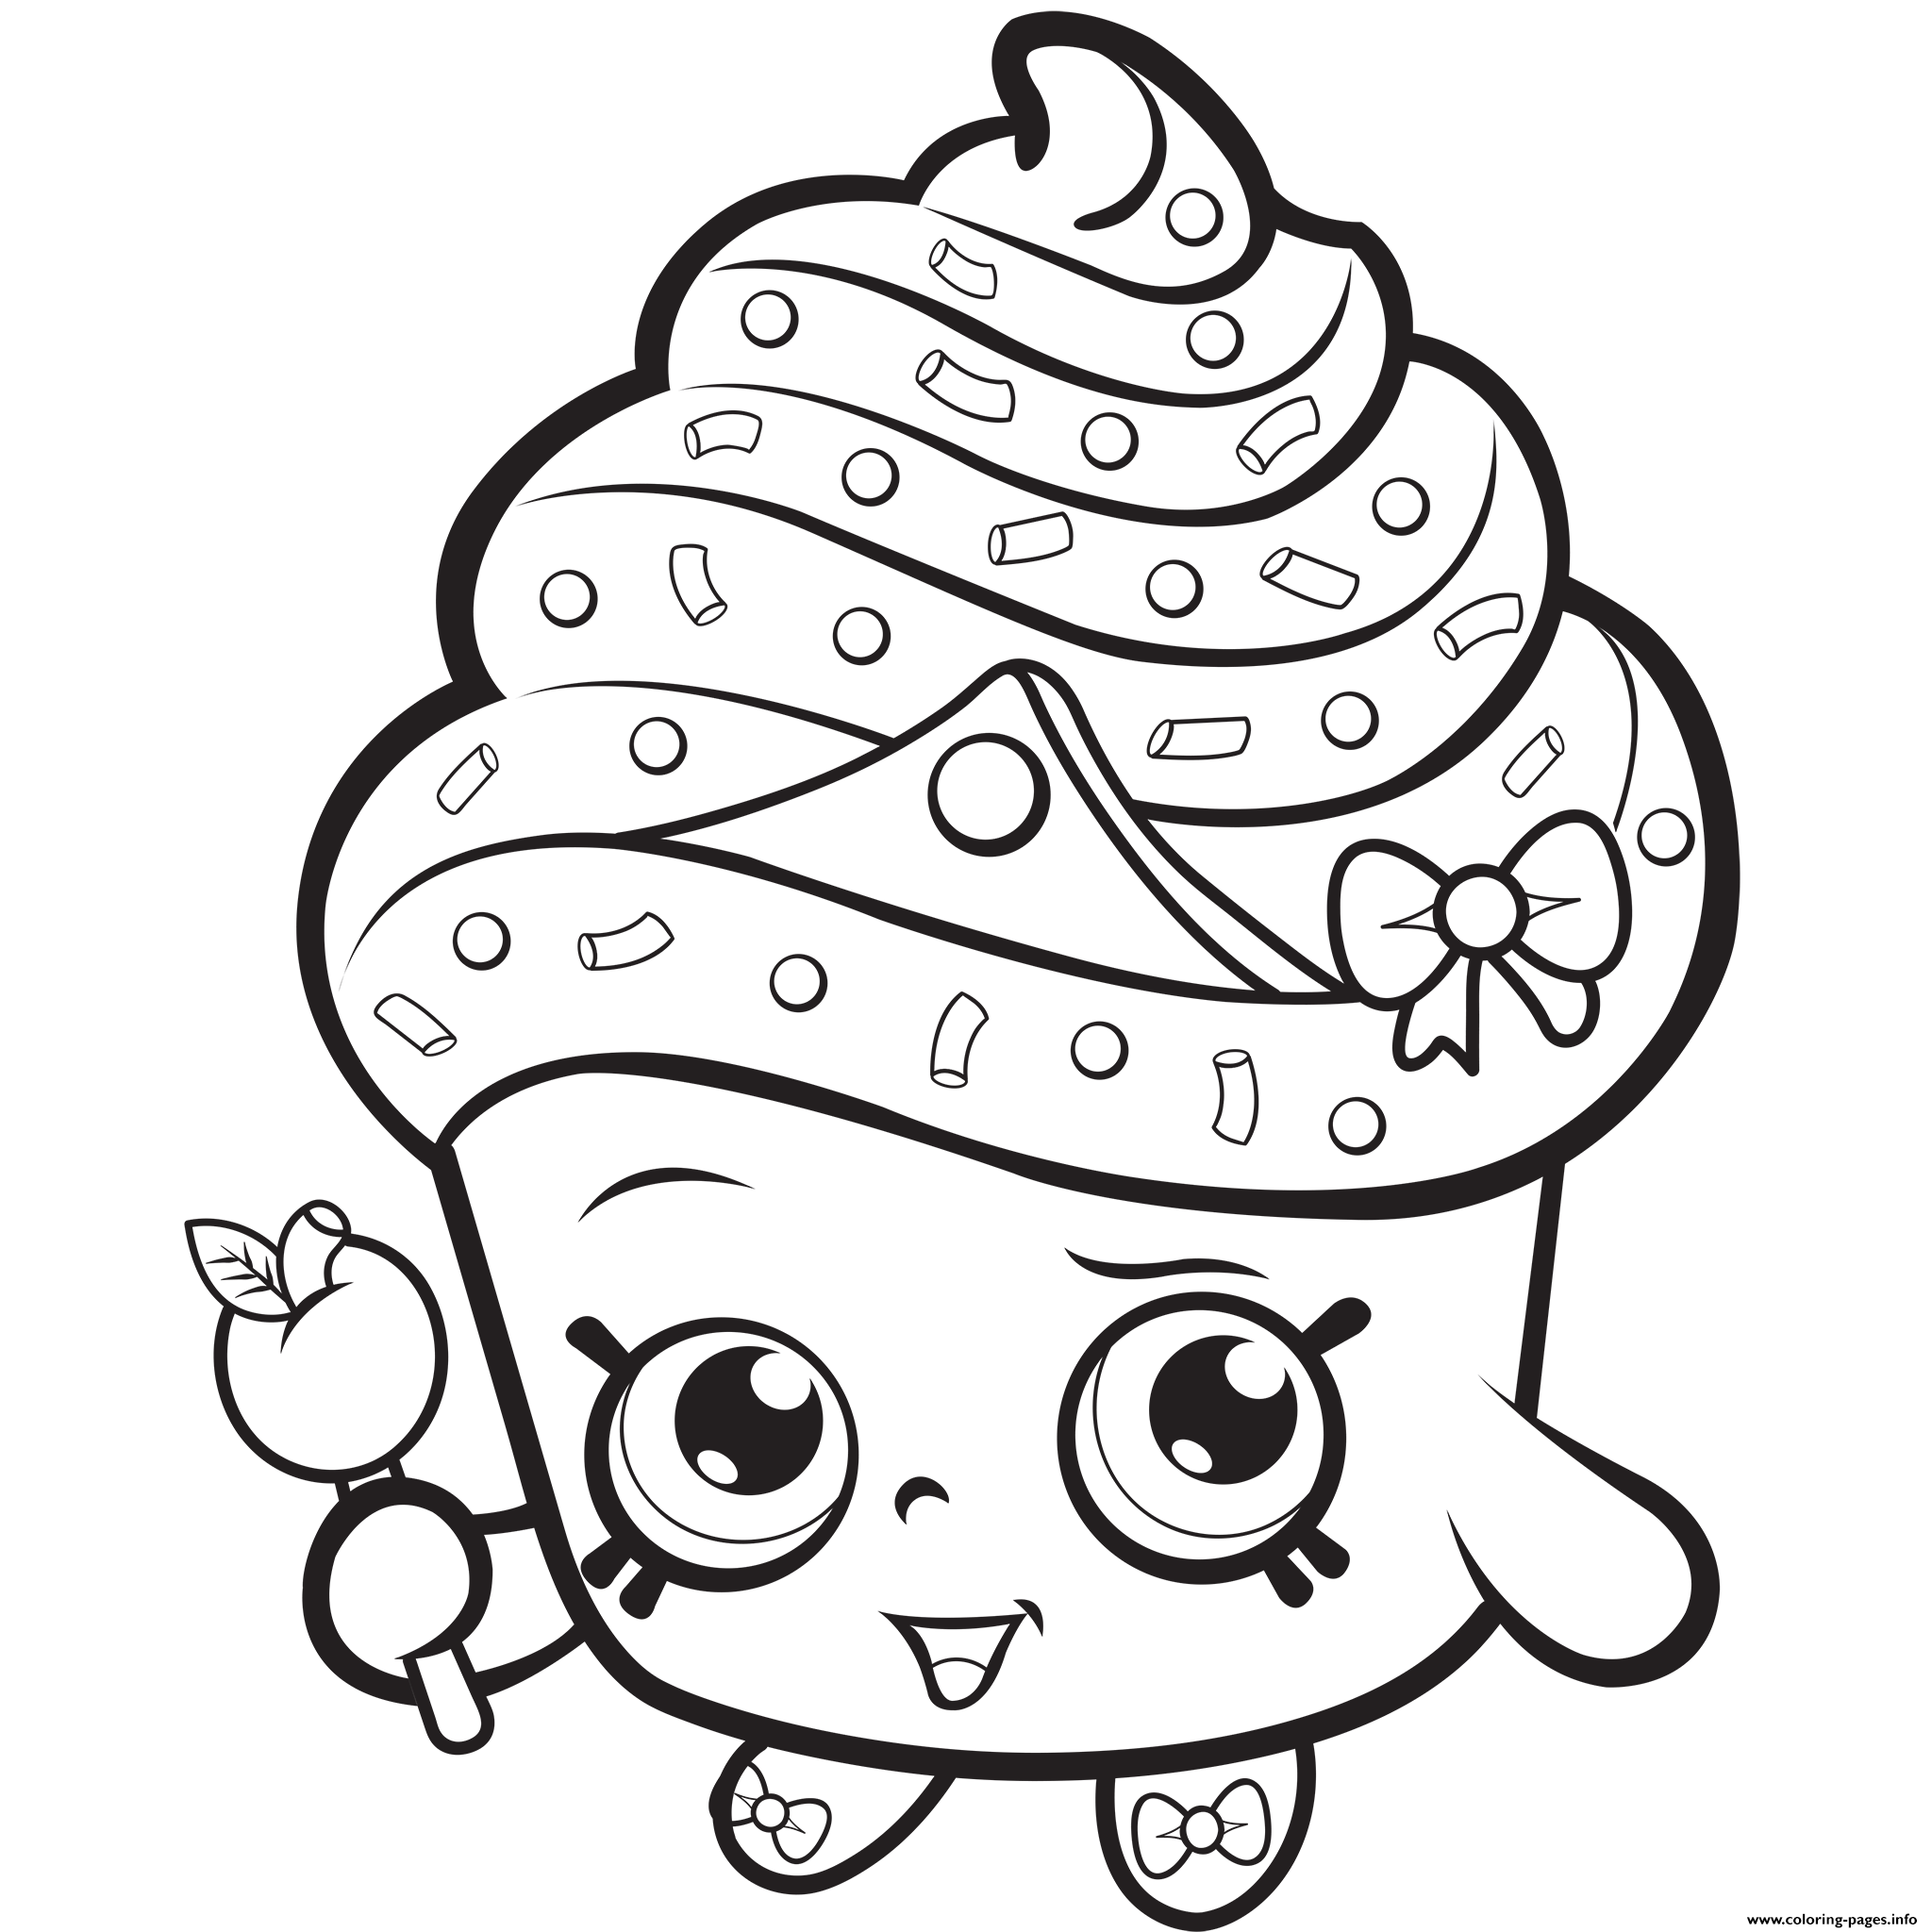 Shopkins coloring pages polly polish - Cupcake Queen Exclusive To Color Colouring Print Cupcake Queen Exclusive To Color Coloring Pages